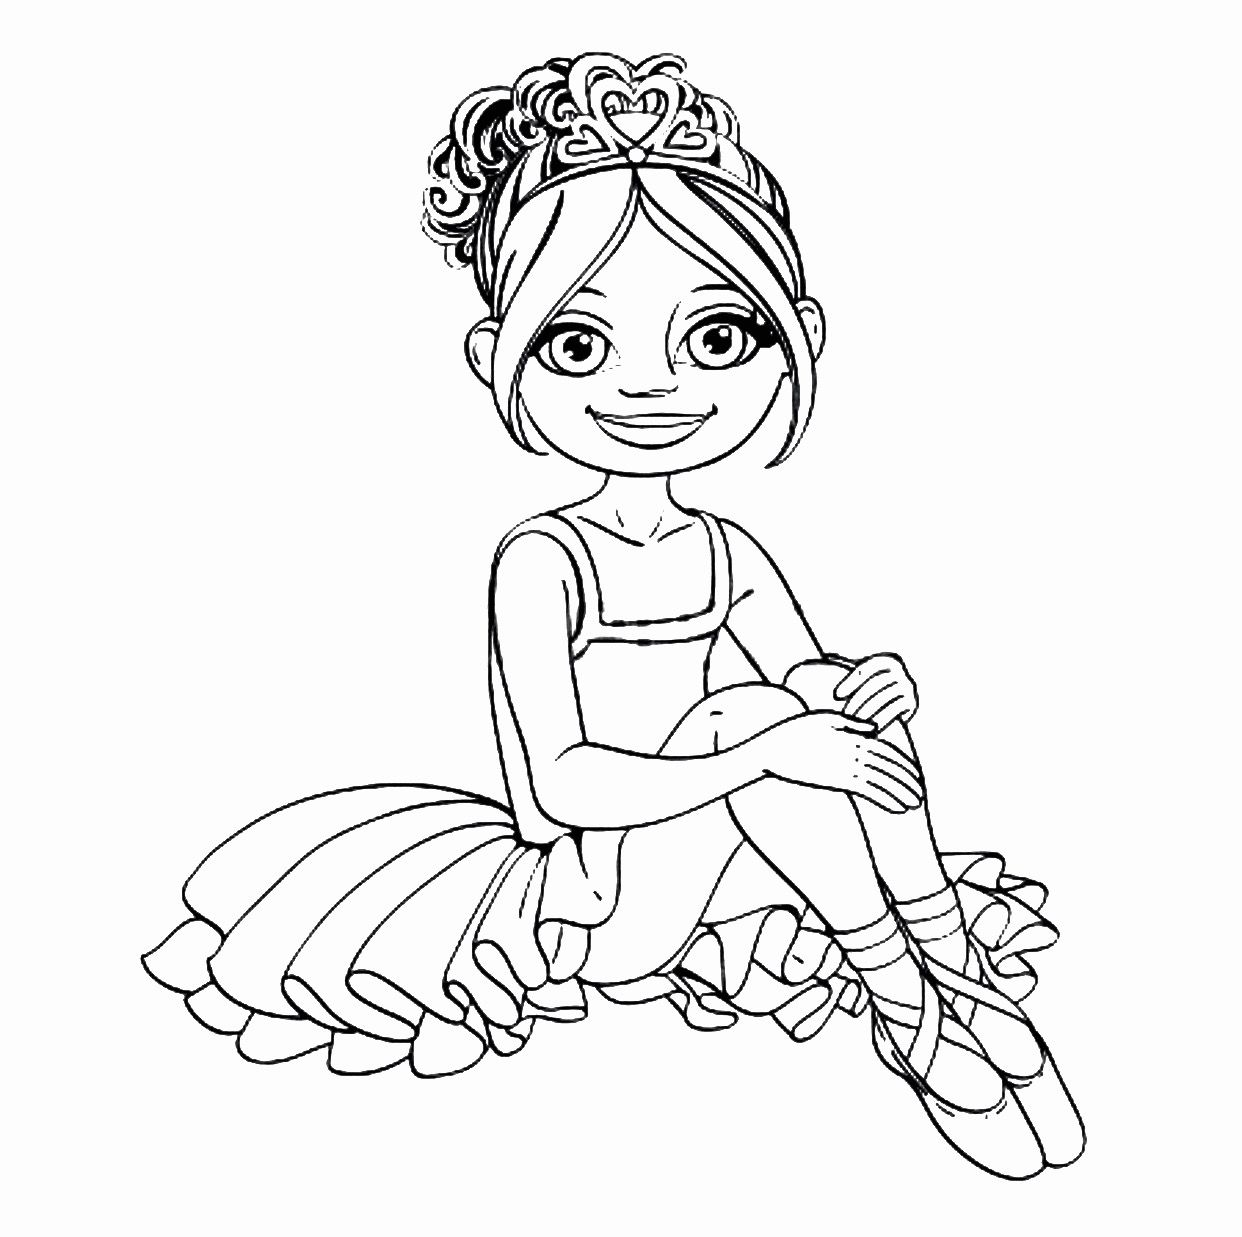 ballerina coloring book pages ballet coloring pages kidsuki pages book coloring ballerina